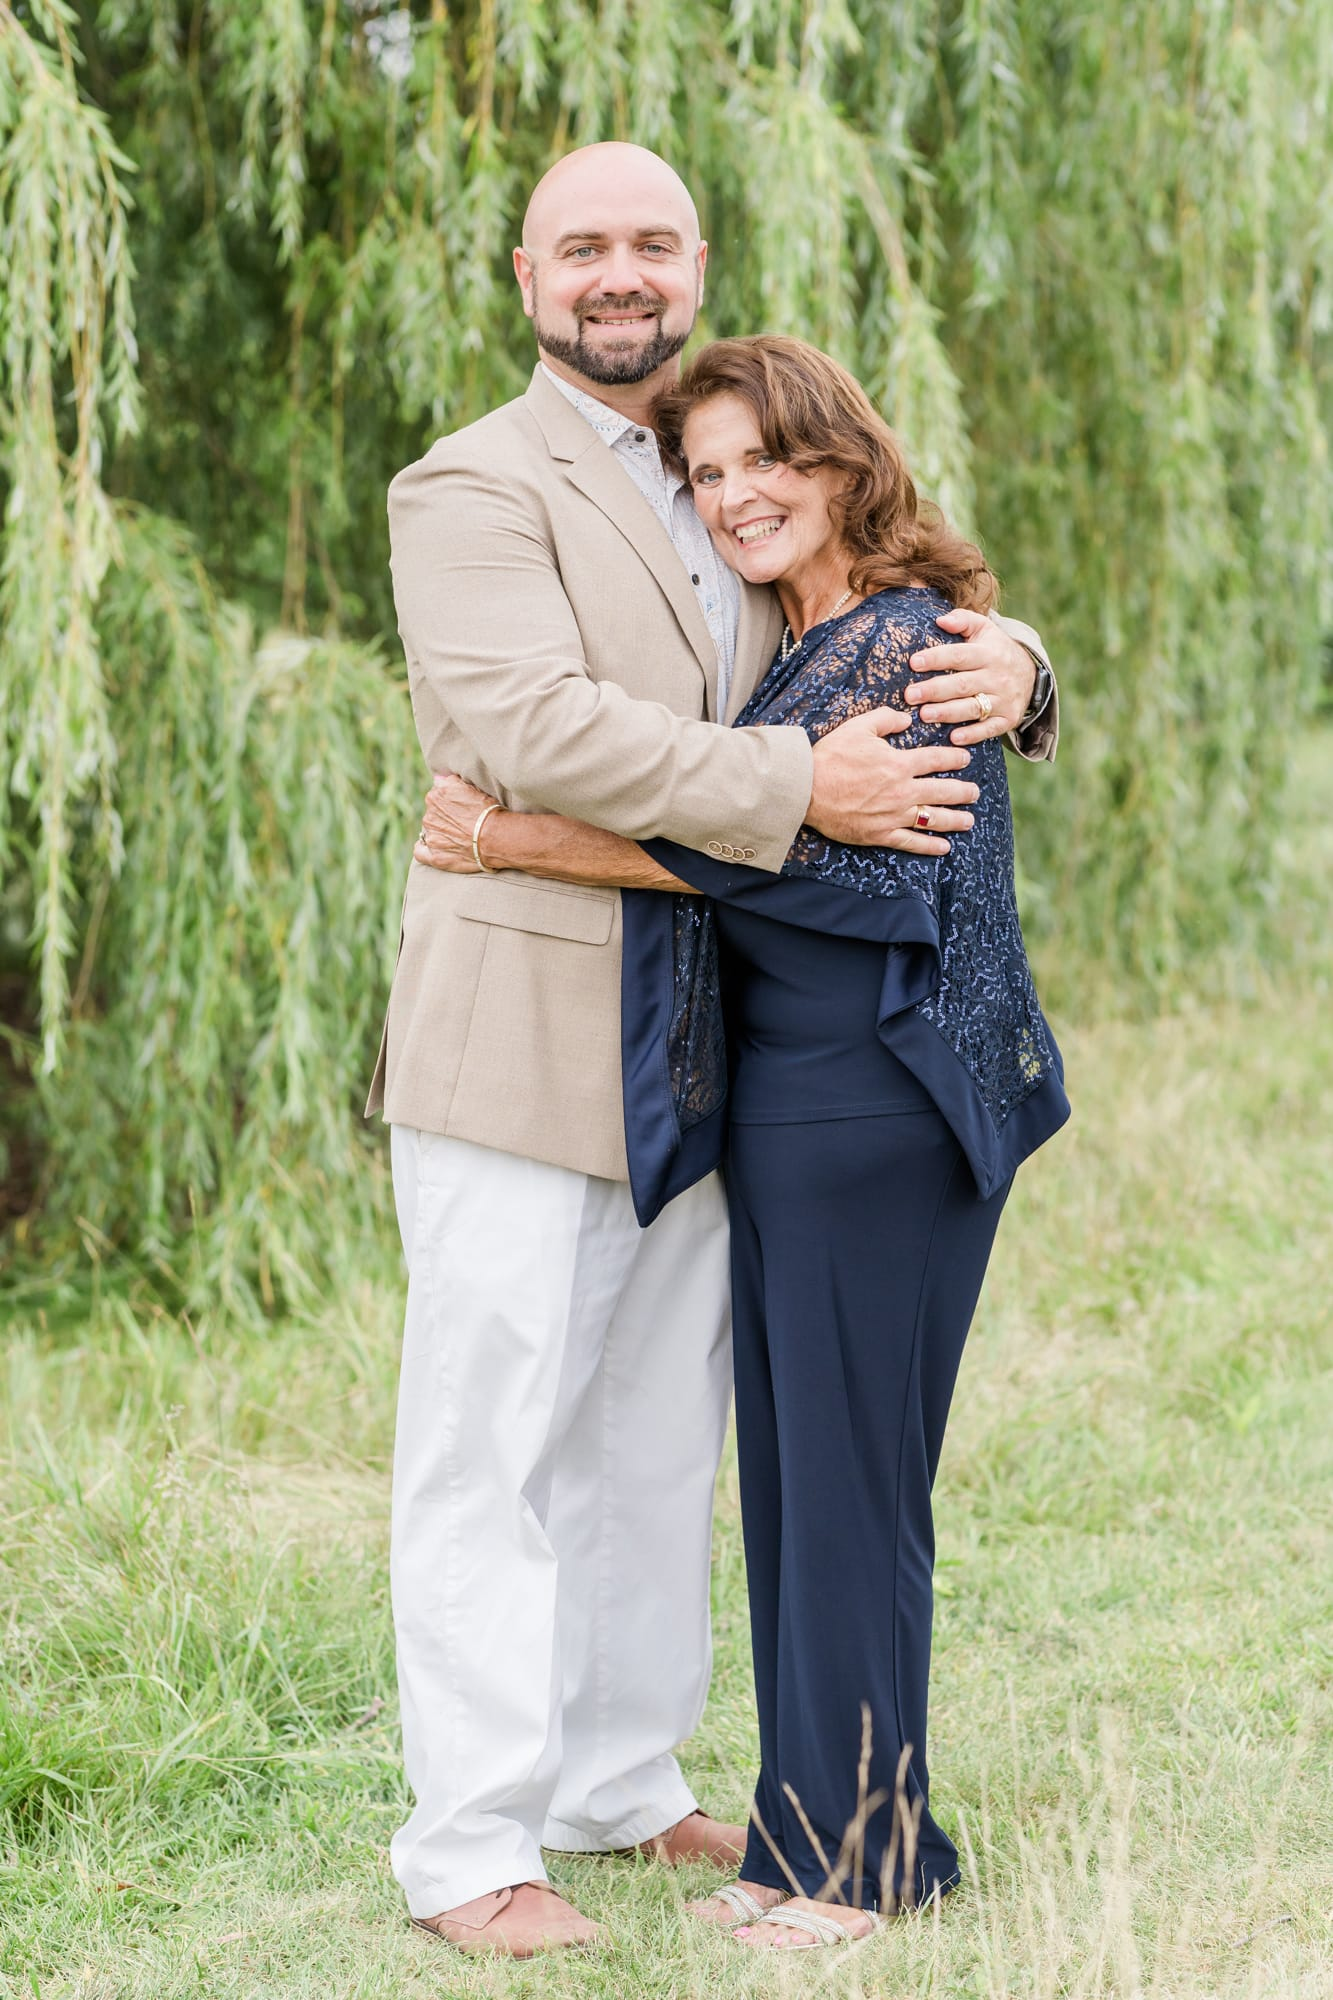 Mother and son portrait at Penn State arboretum